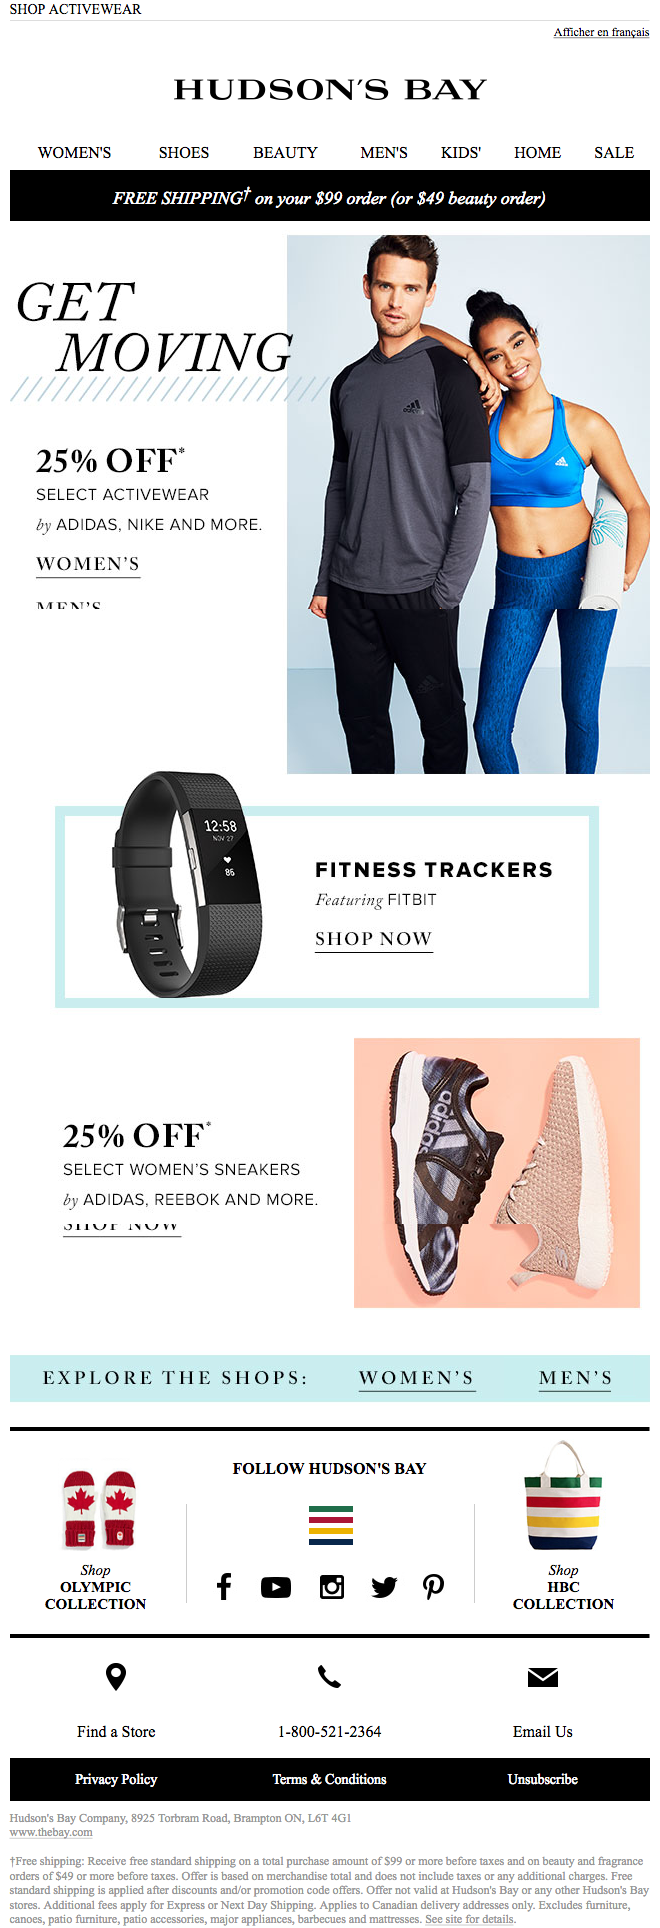 Email Marketing Design From Hudson S Bay Get Moving New Years Resolution Shop Activewear Adidas Sneakers Women